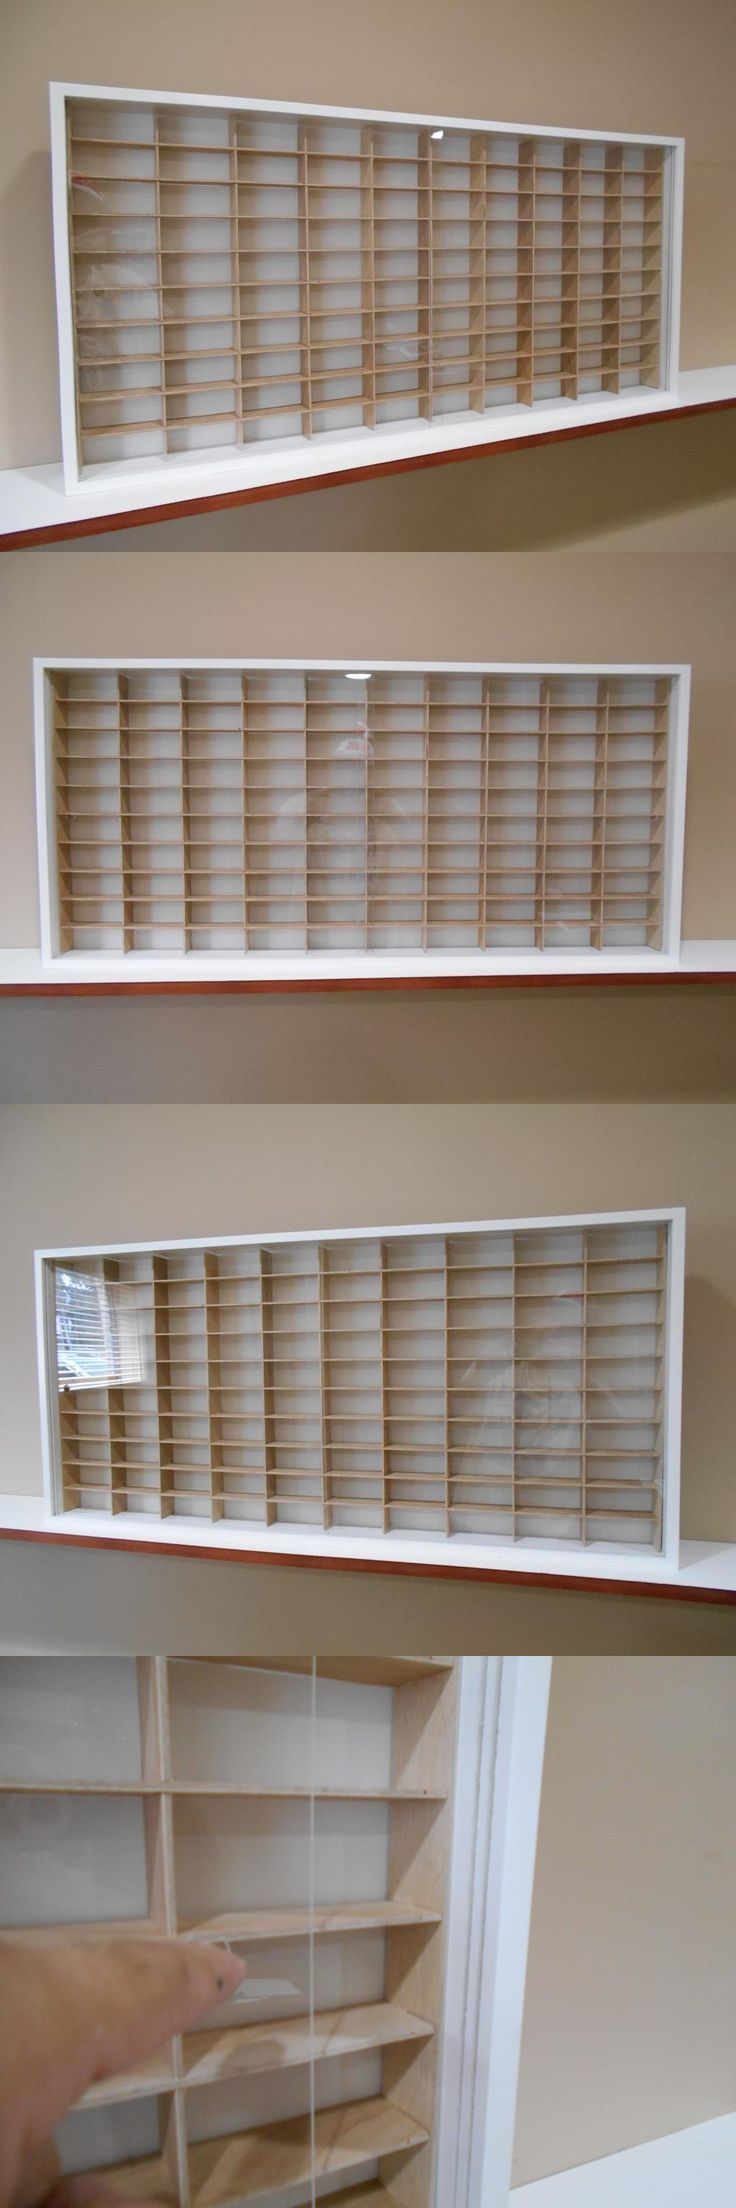 Shelf bookcases memorial wall displays antique white wall display - Display Cases And Stands 171135 Showcase Wall Display Case Cabinet For 1 64 Scale